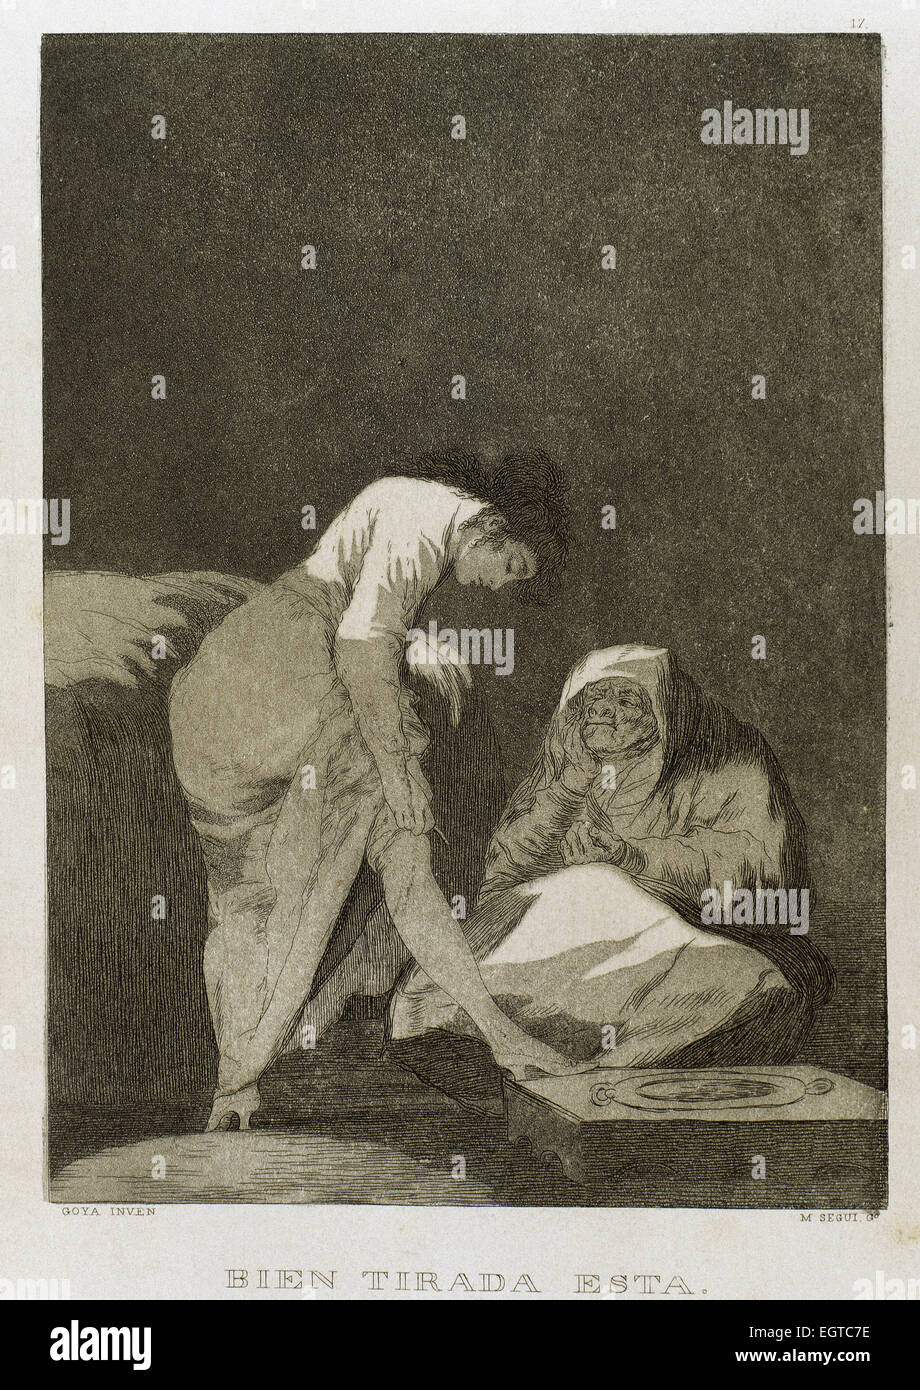 Francisco Goya (1746-1828). Caprices. Plaque 17. It is nicely stretched. 18th century. Prado Museum. Madrid. Spain. - Stock Image